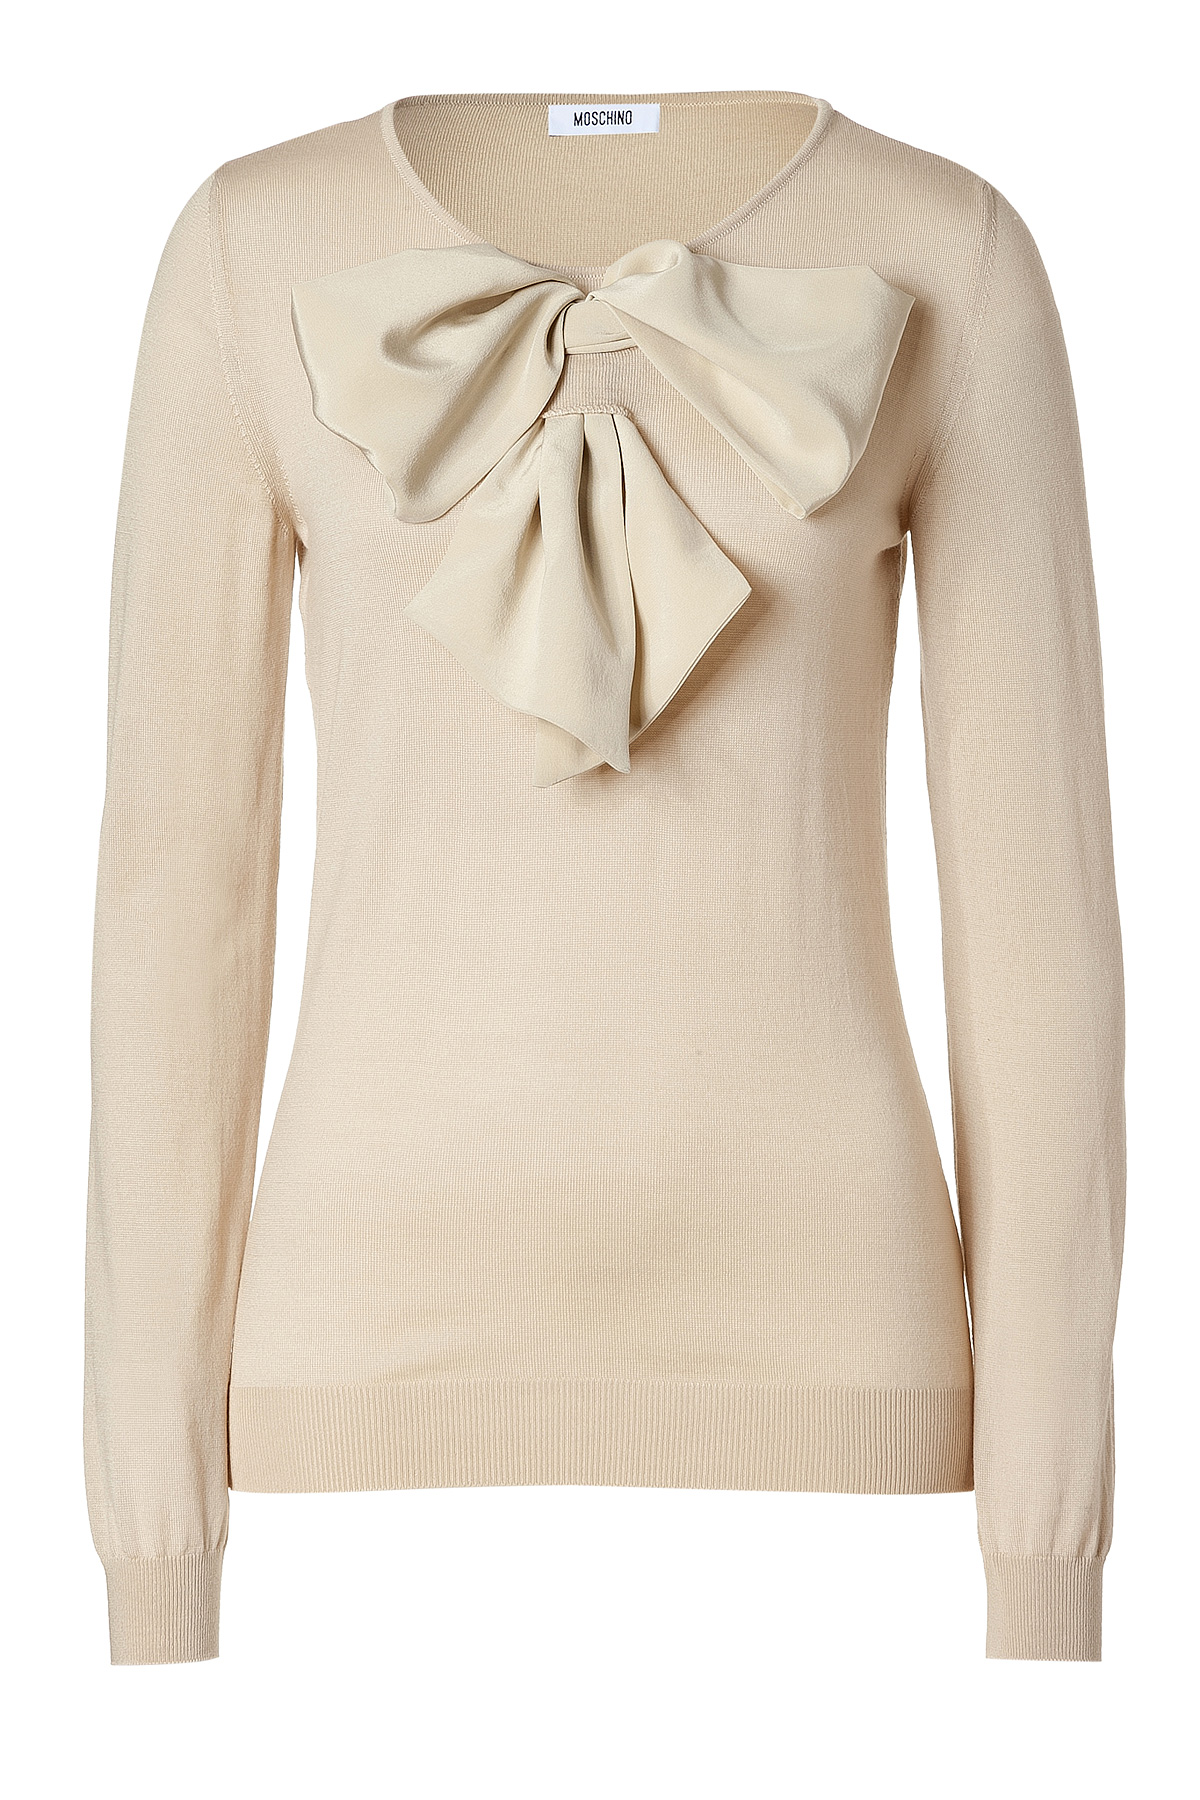 moschino beige big bow embellished wool pullover in natural lyst. Black Bedroom Furniture Sets. Home Design Ideas